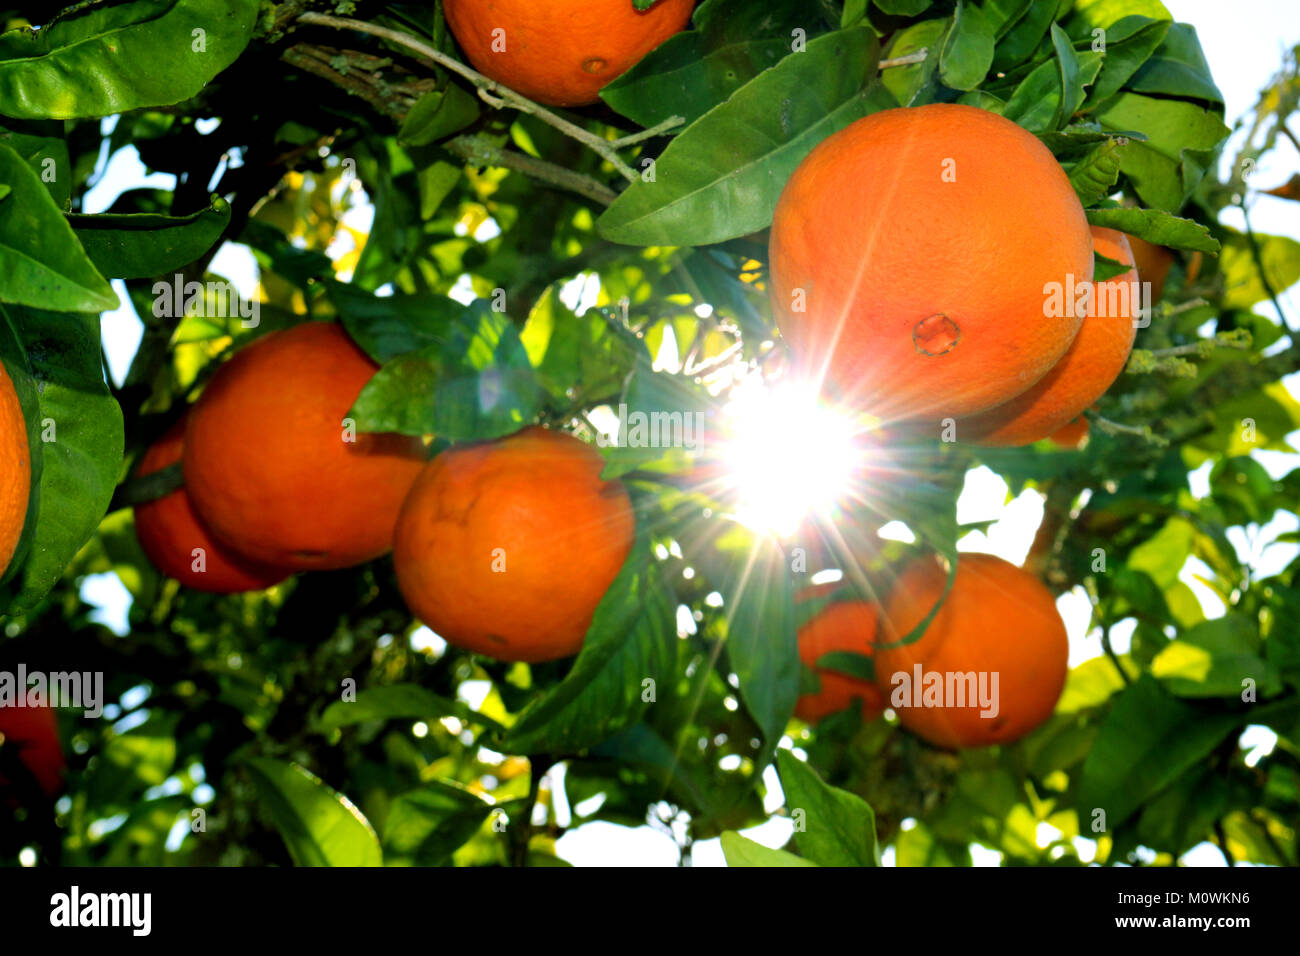 the sun shines between the branches of an orange tree - Stock Image